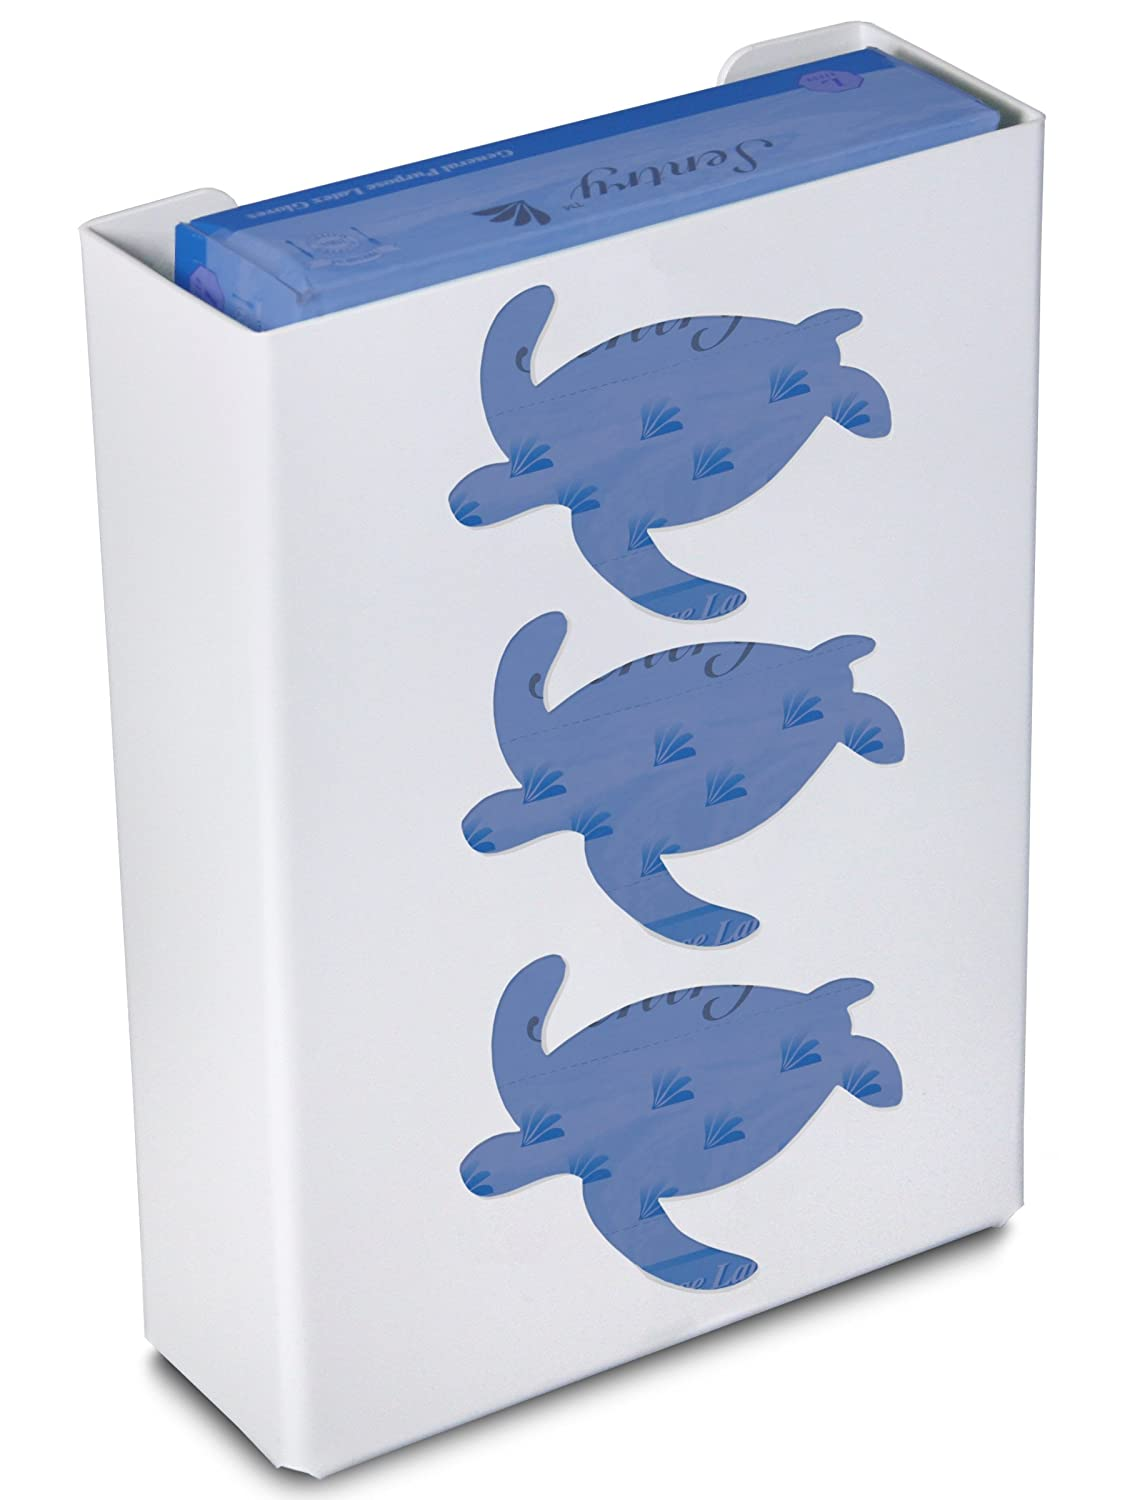 TrippNT 50858 Priced Right Triple Glove Box Holder with Sea Turtle, 11' Width x 15' Height x 4' Depth 11 Width x 15 Height x 4 Depth